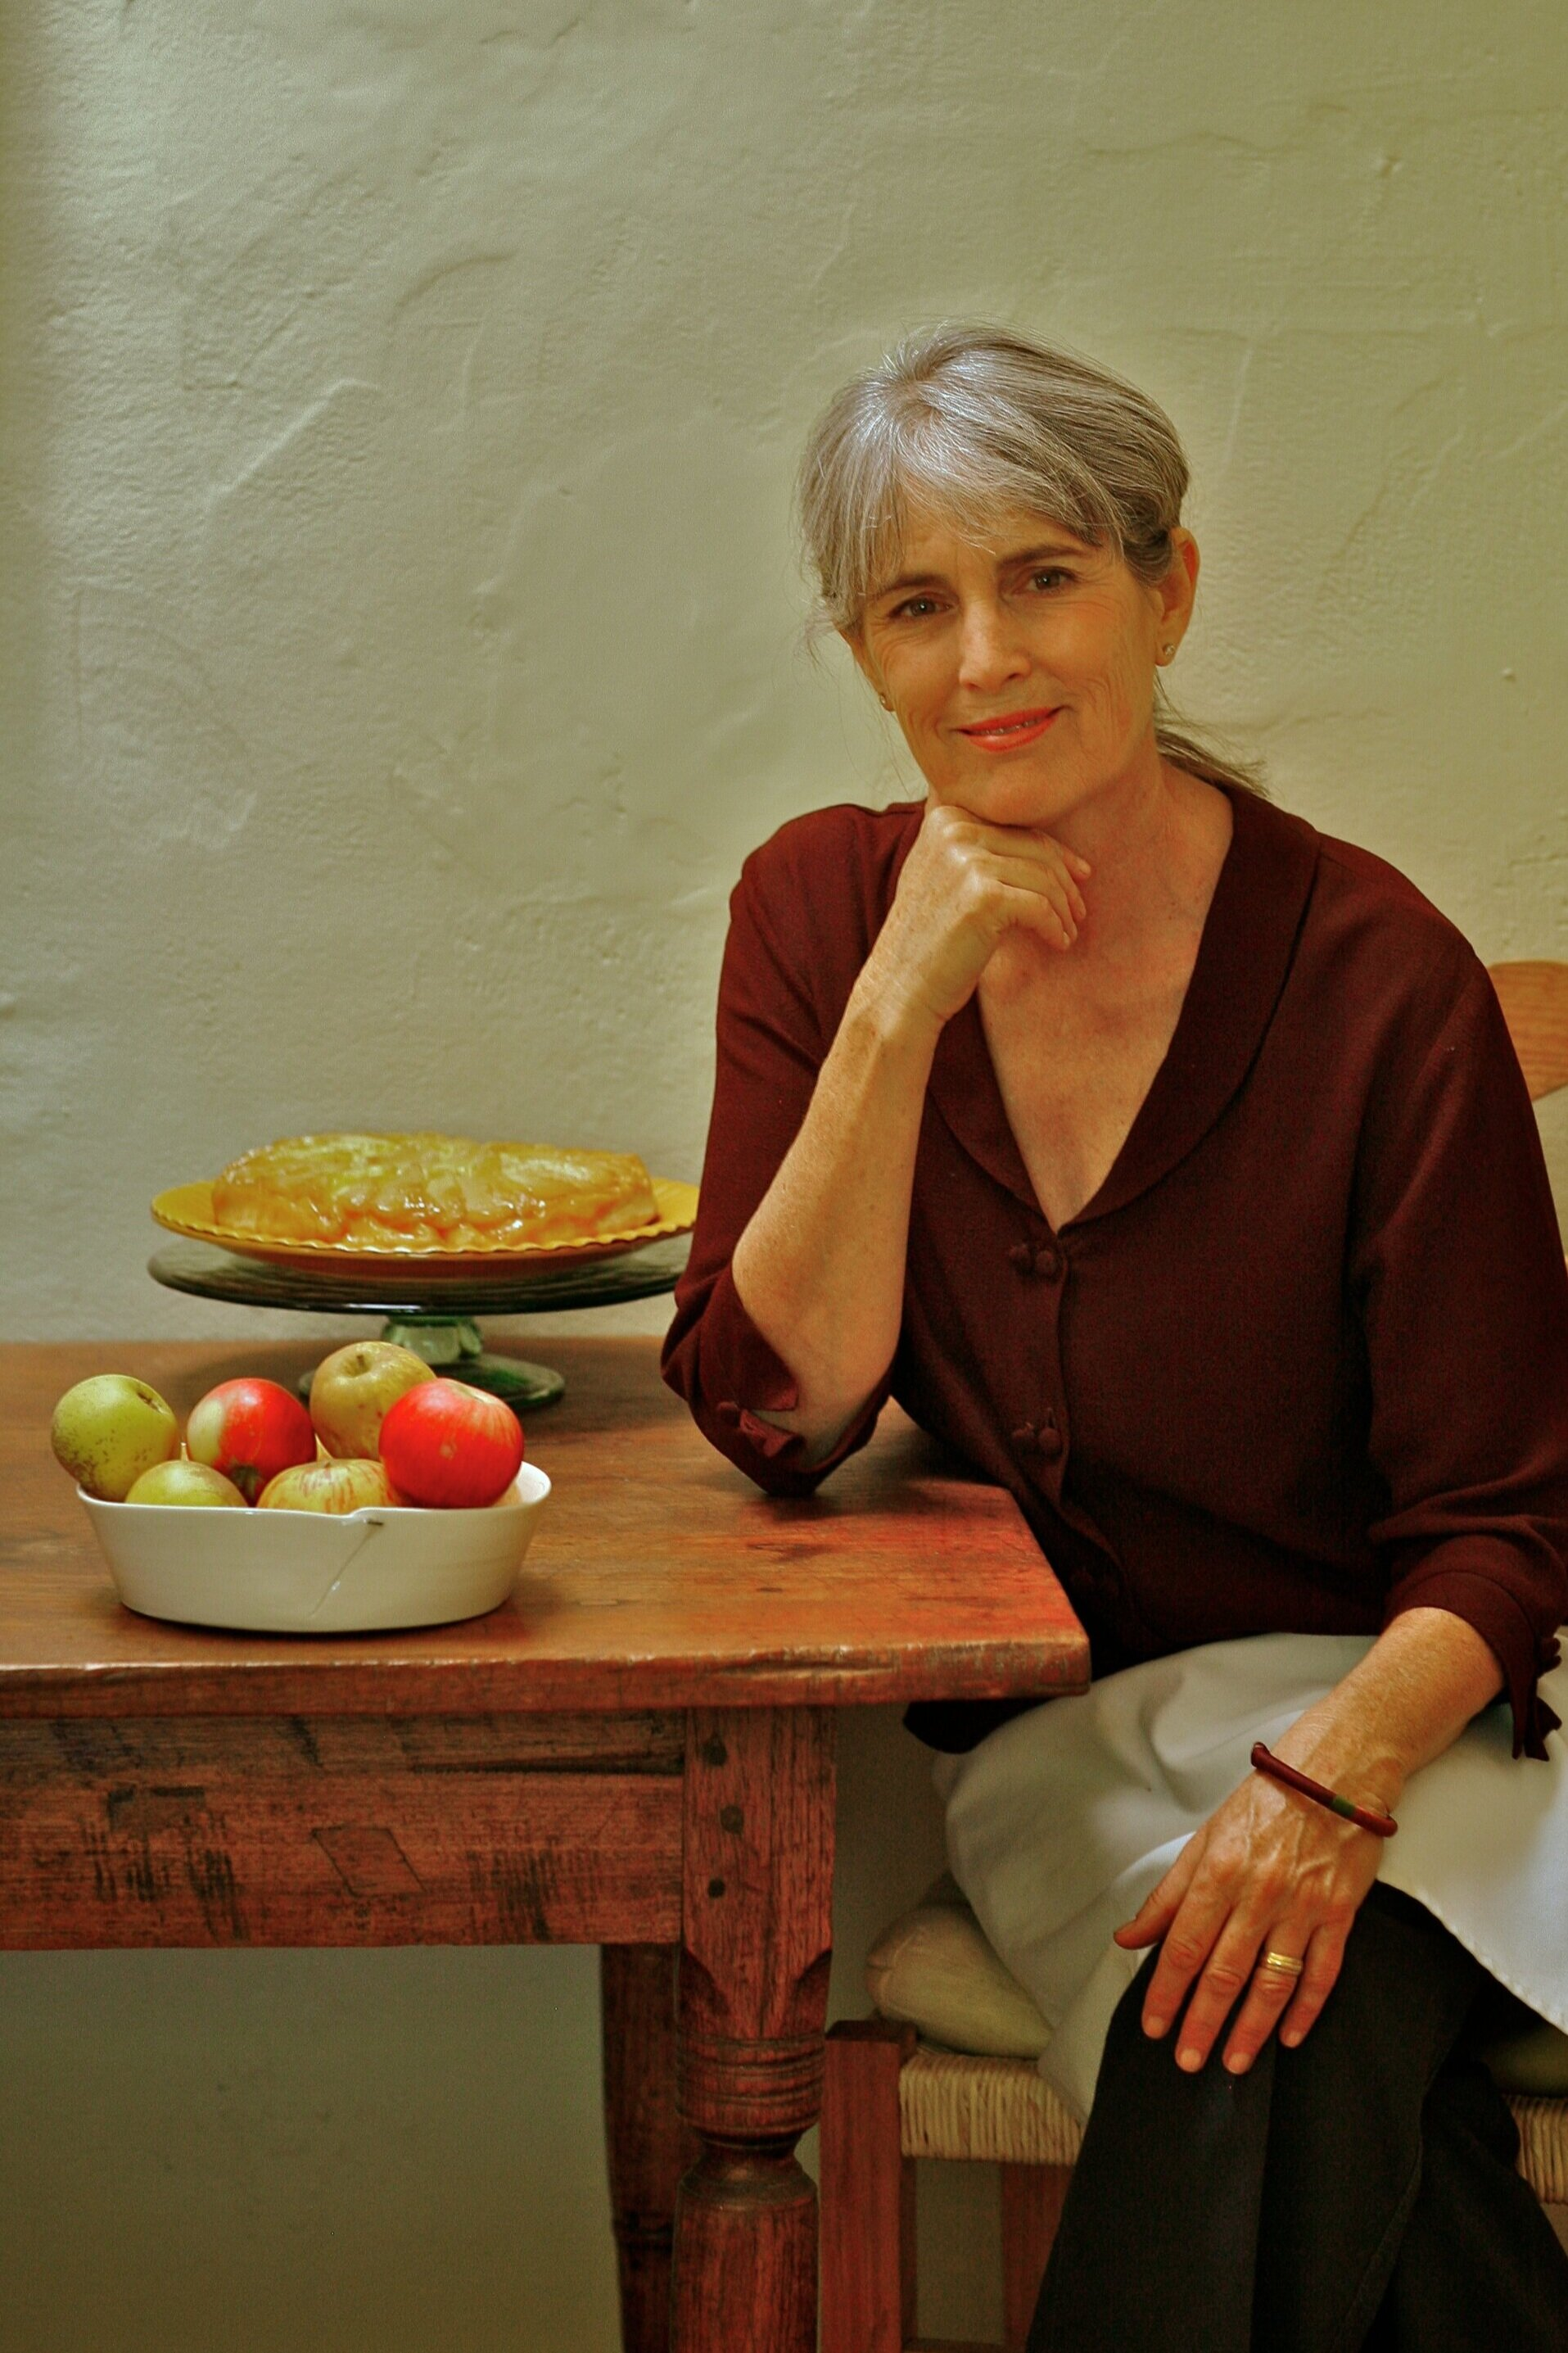 Deborah Madison has helped shaped attitudes to meat-free eating. Photograph: Laurie Smith